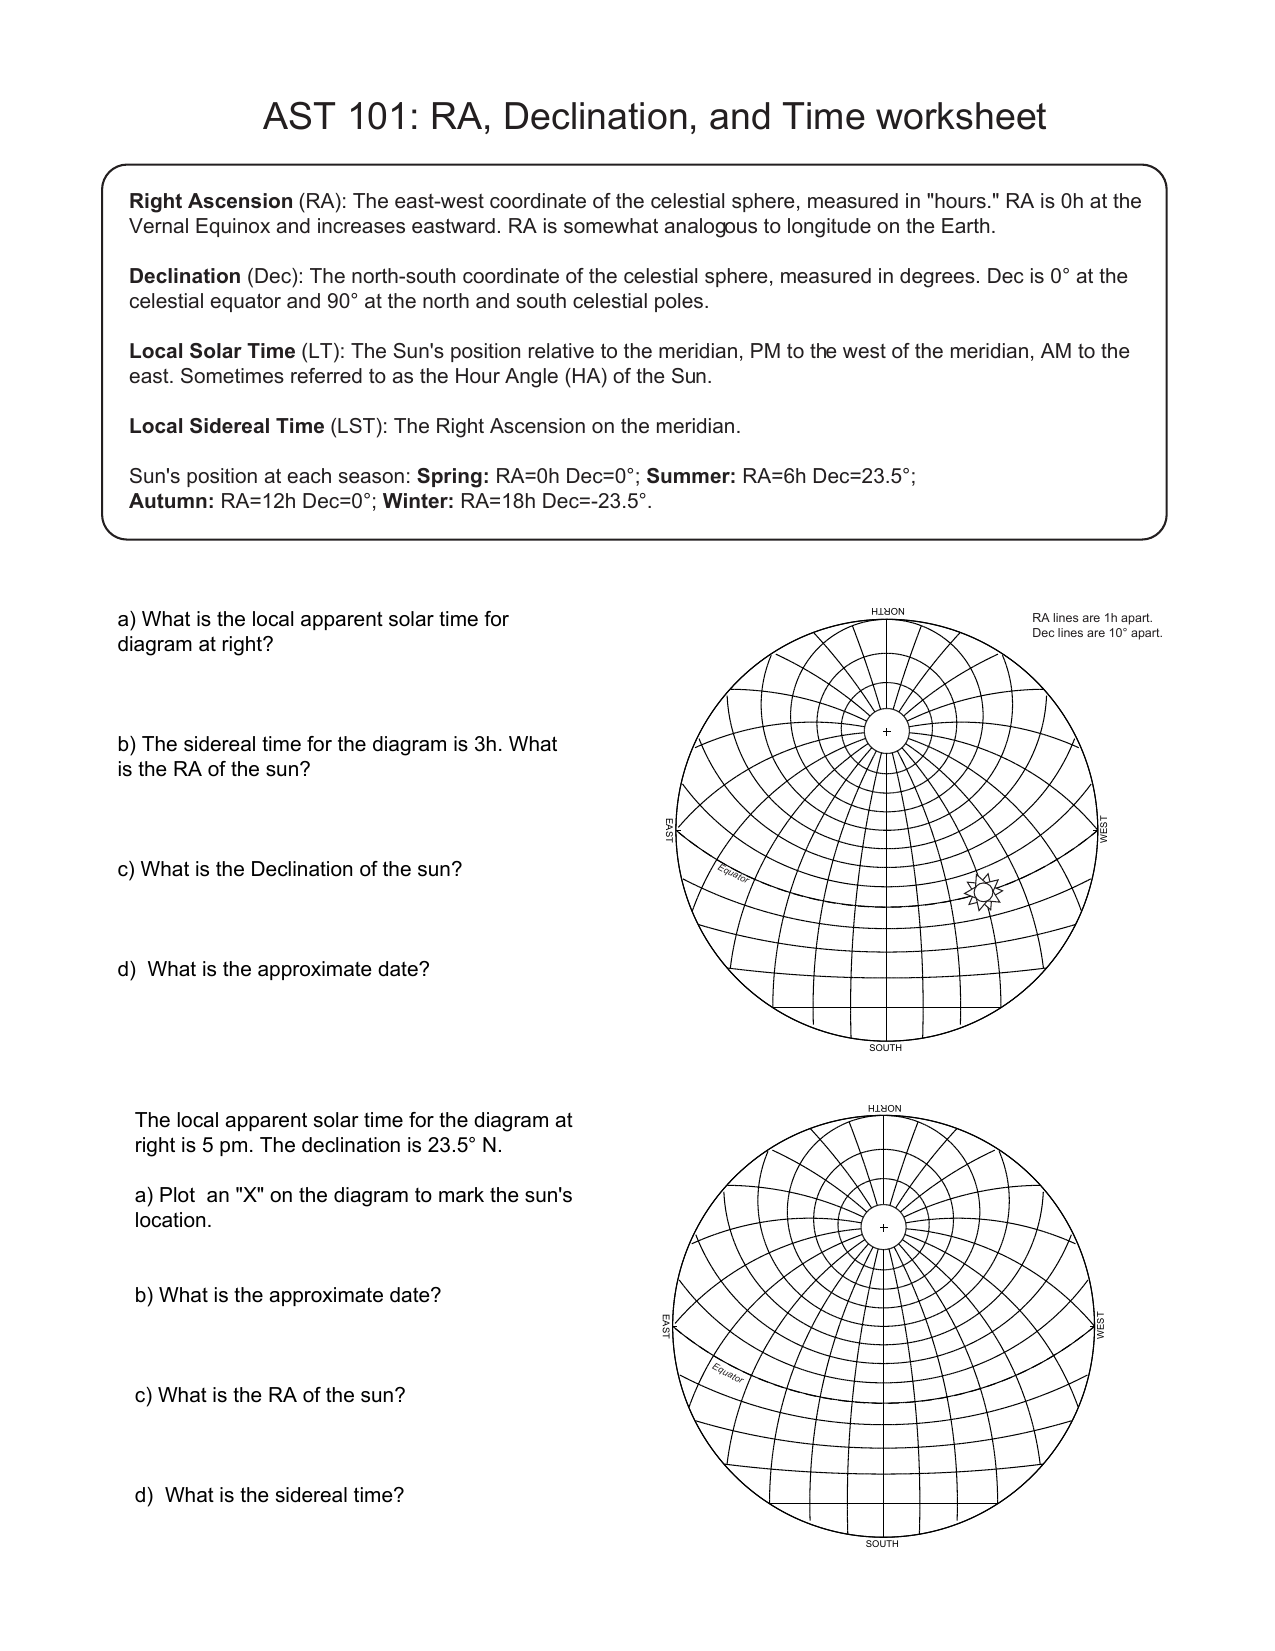 Gcf Worksheets Word Ast  Ra Declination And Time Worksheet Math Wizard Worksheet with Compound Word Worksheets 3rd Grade  Brain Game Worksheets Word